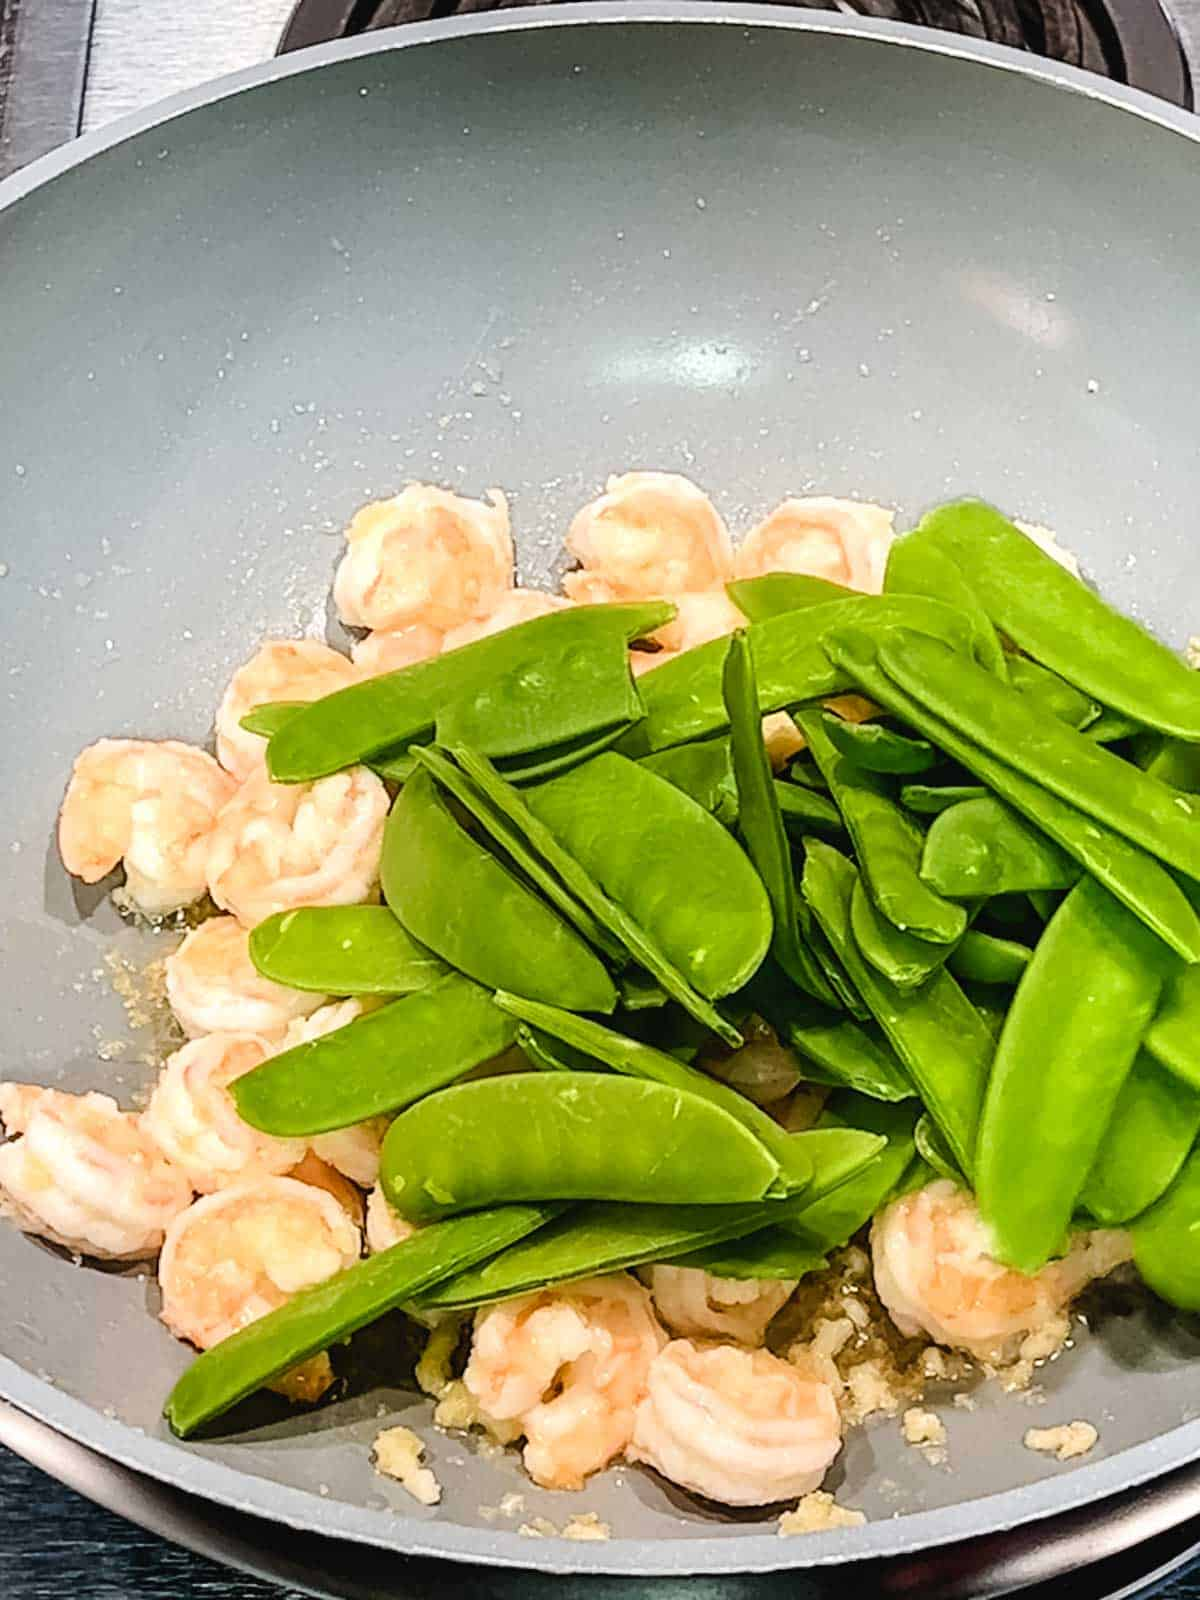 Adding the snow peas to the shrimp in the wok.